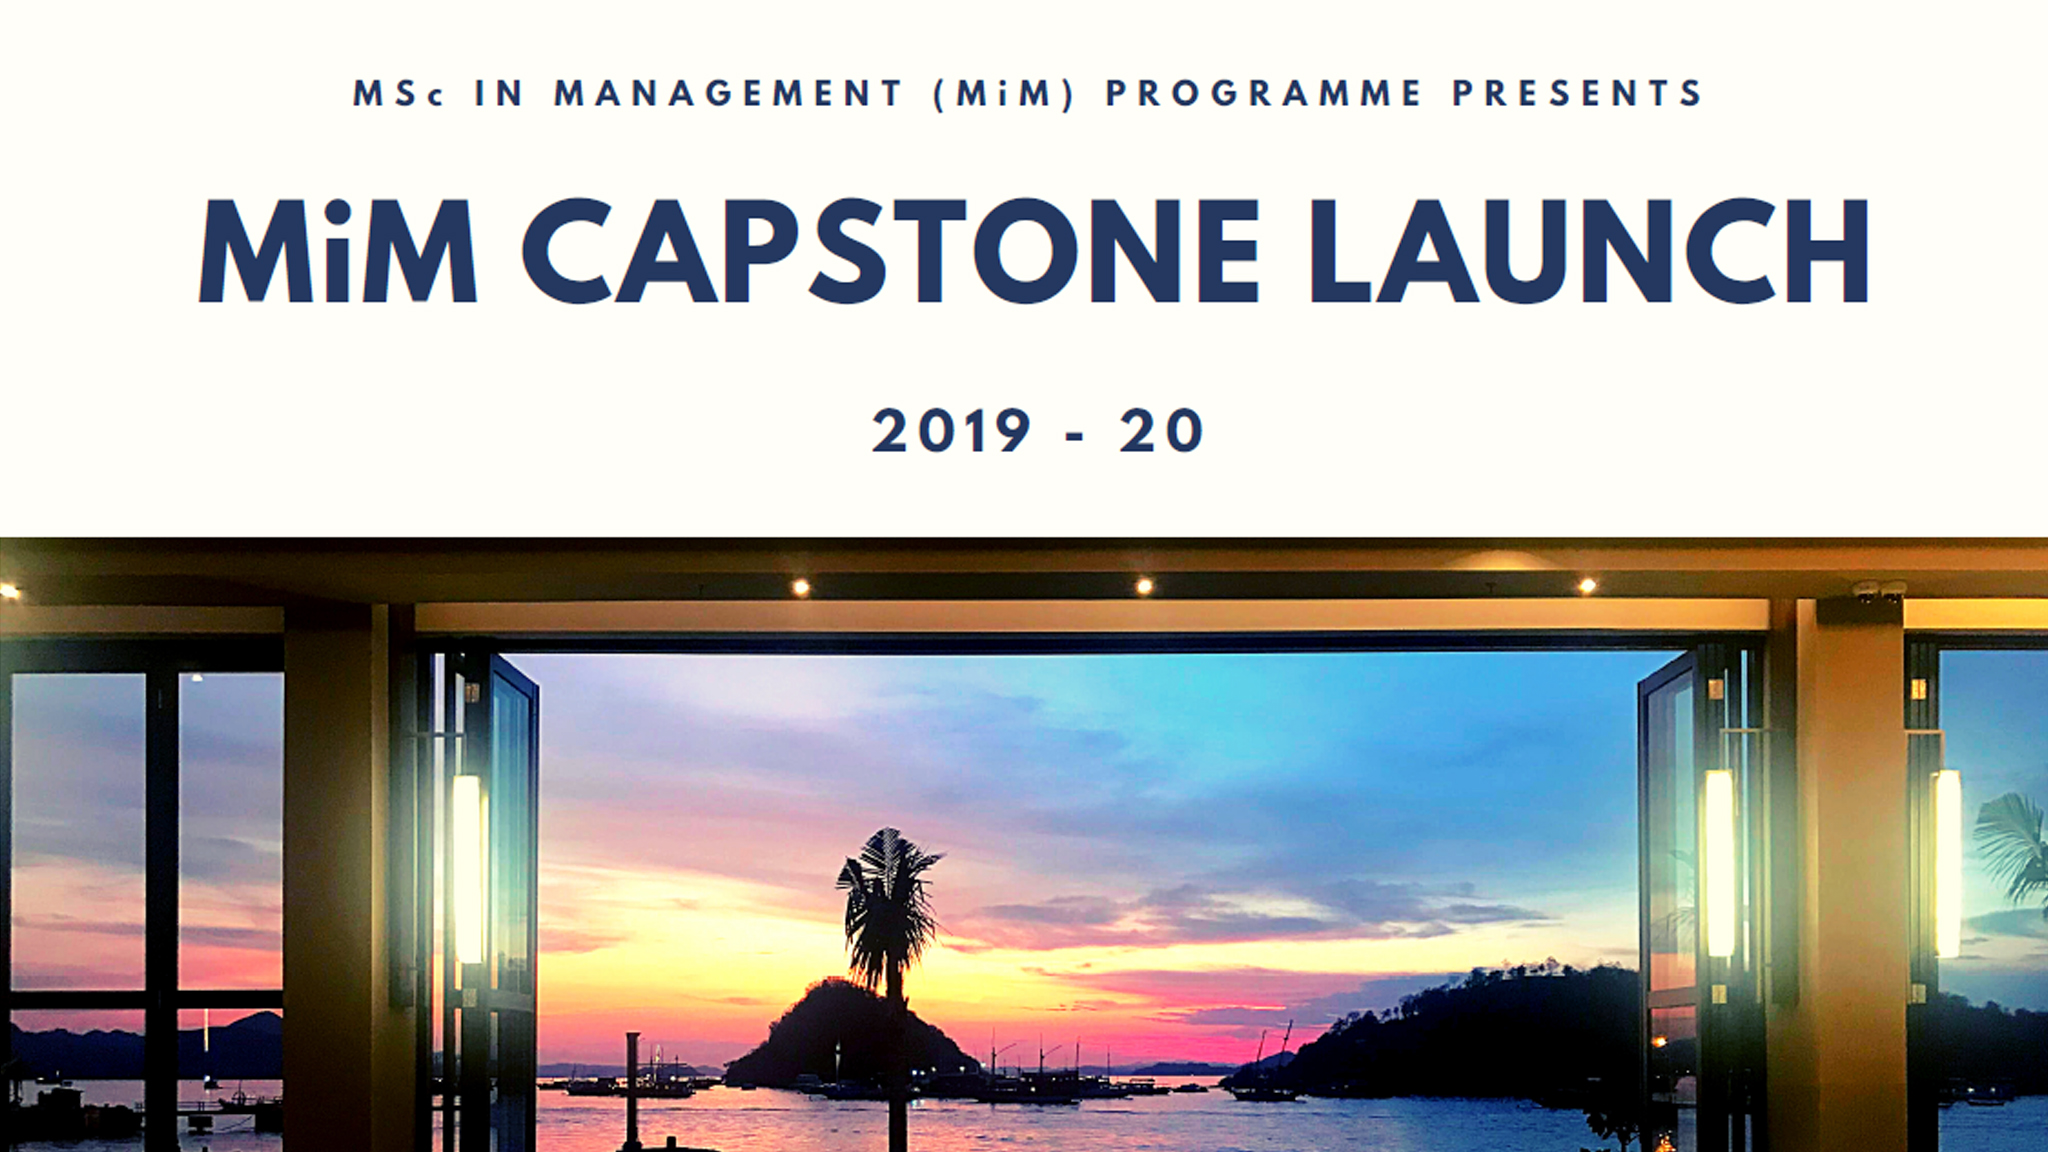 CUHK Business School MiM Capstone Case Launch